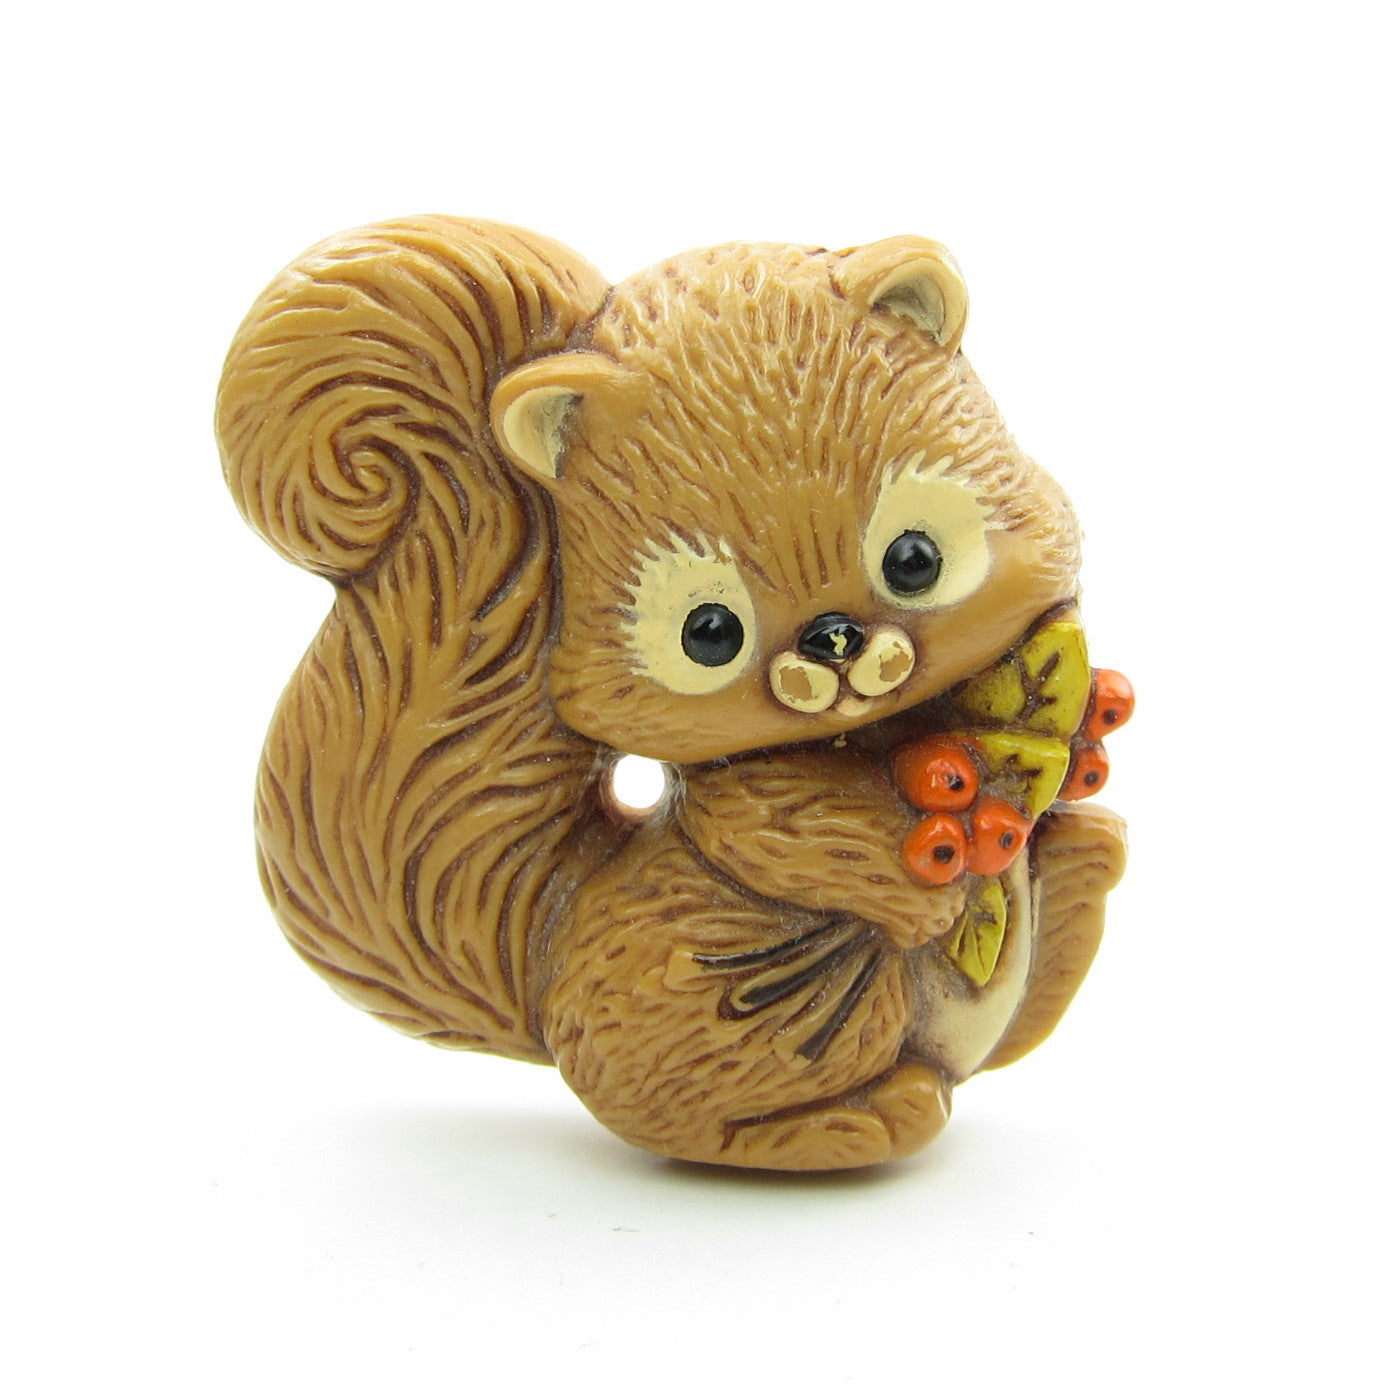 Hallmark squirrel pin with leaves and berries